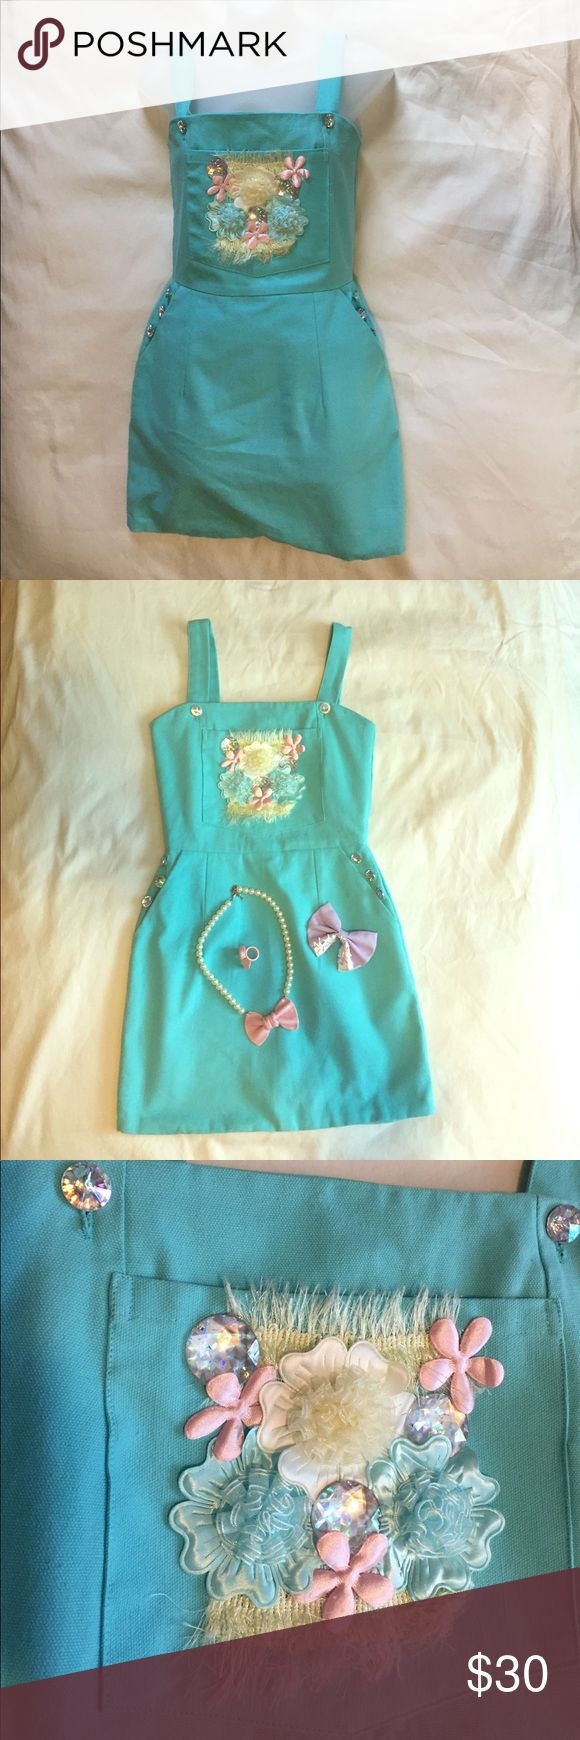 Pastel Dress NWOT Jumper W Pockets So cute. Durable material. Imported from Thailand fairy godmother Dresses Mini